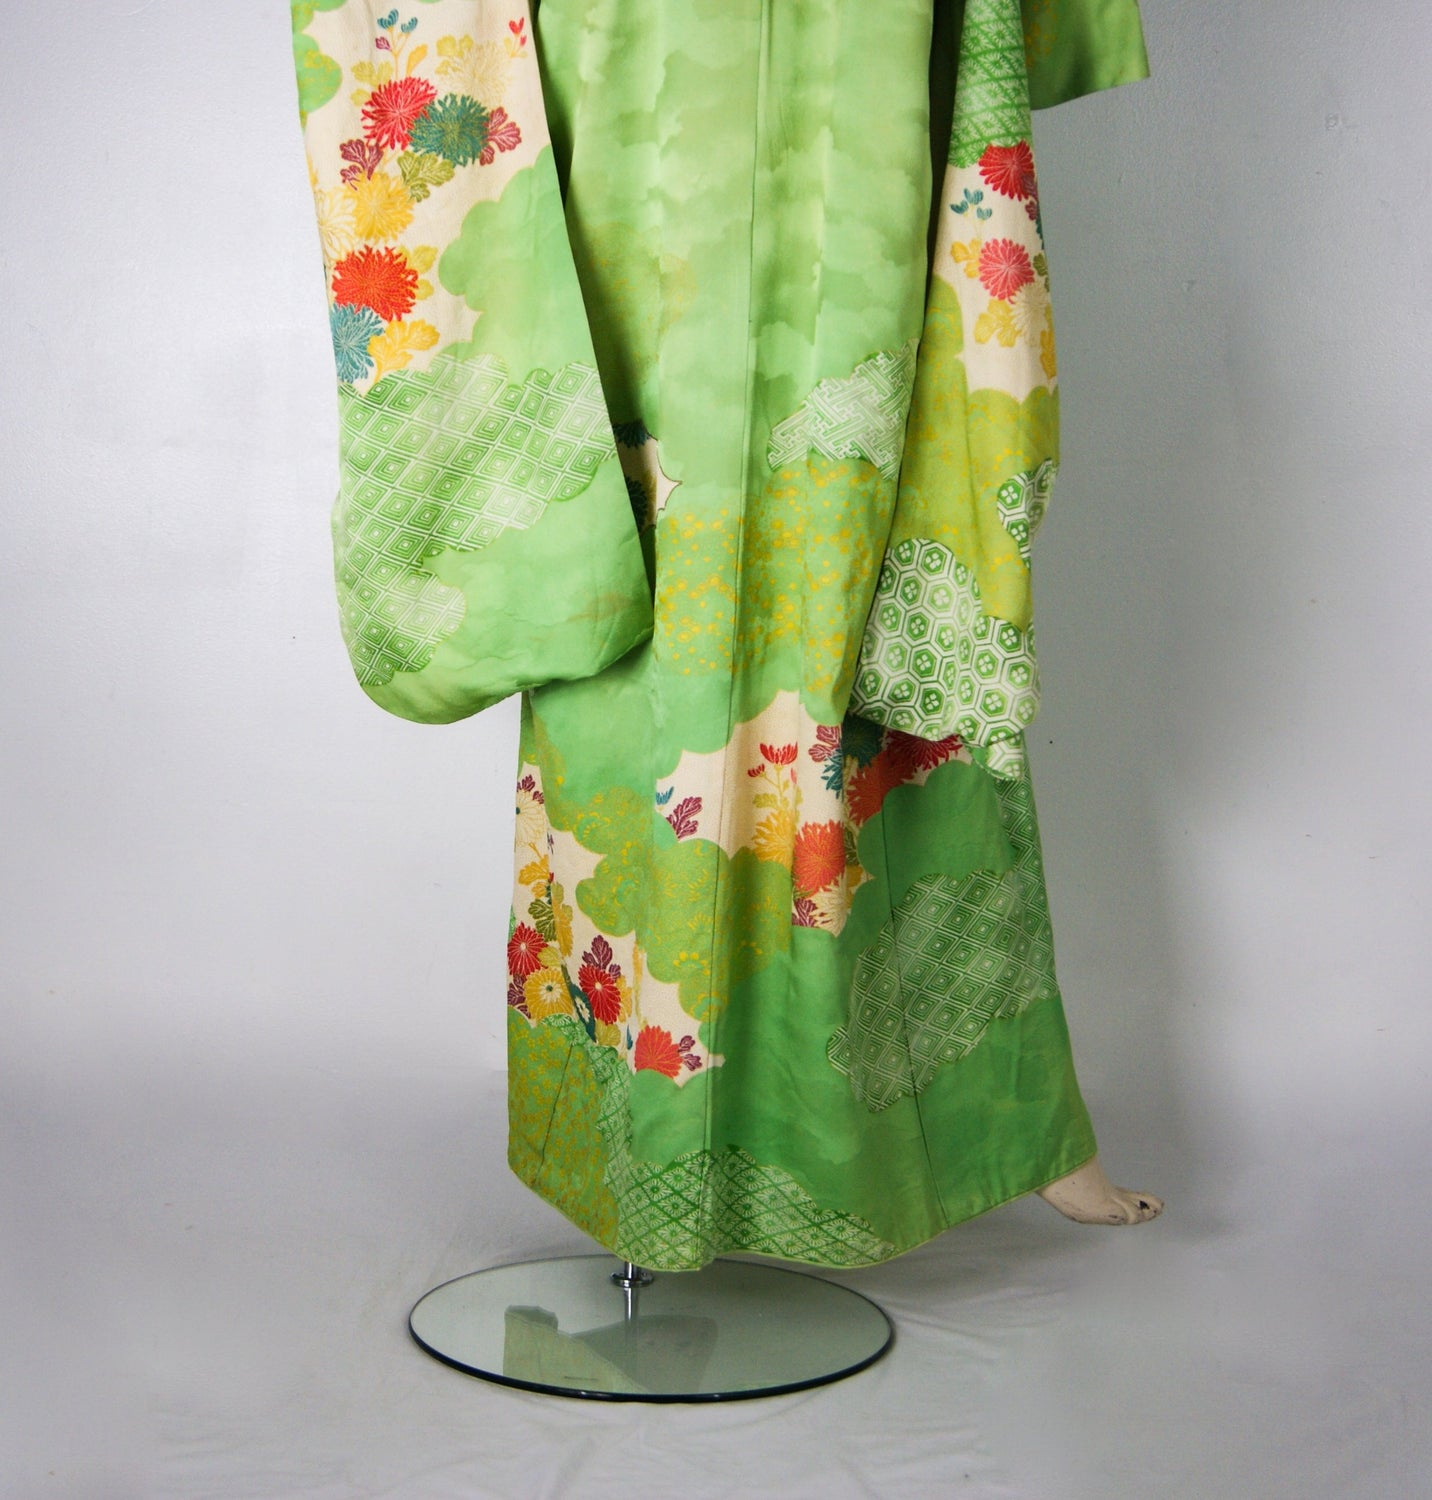 Exquisite Vintage 1950s Gold Thread Embroidered Hand Painted Japanese Furisode Silk Kimono